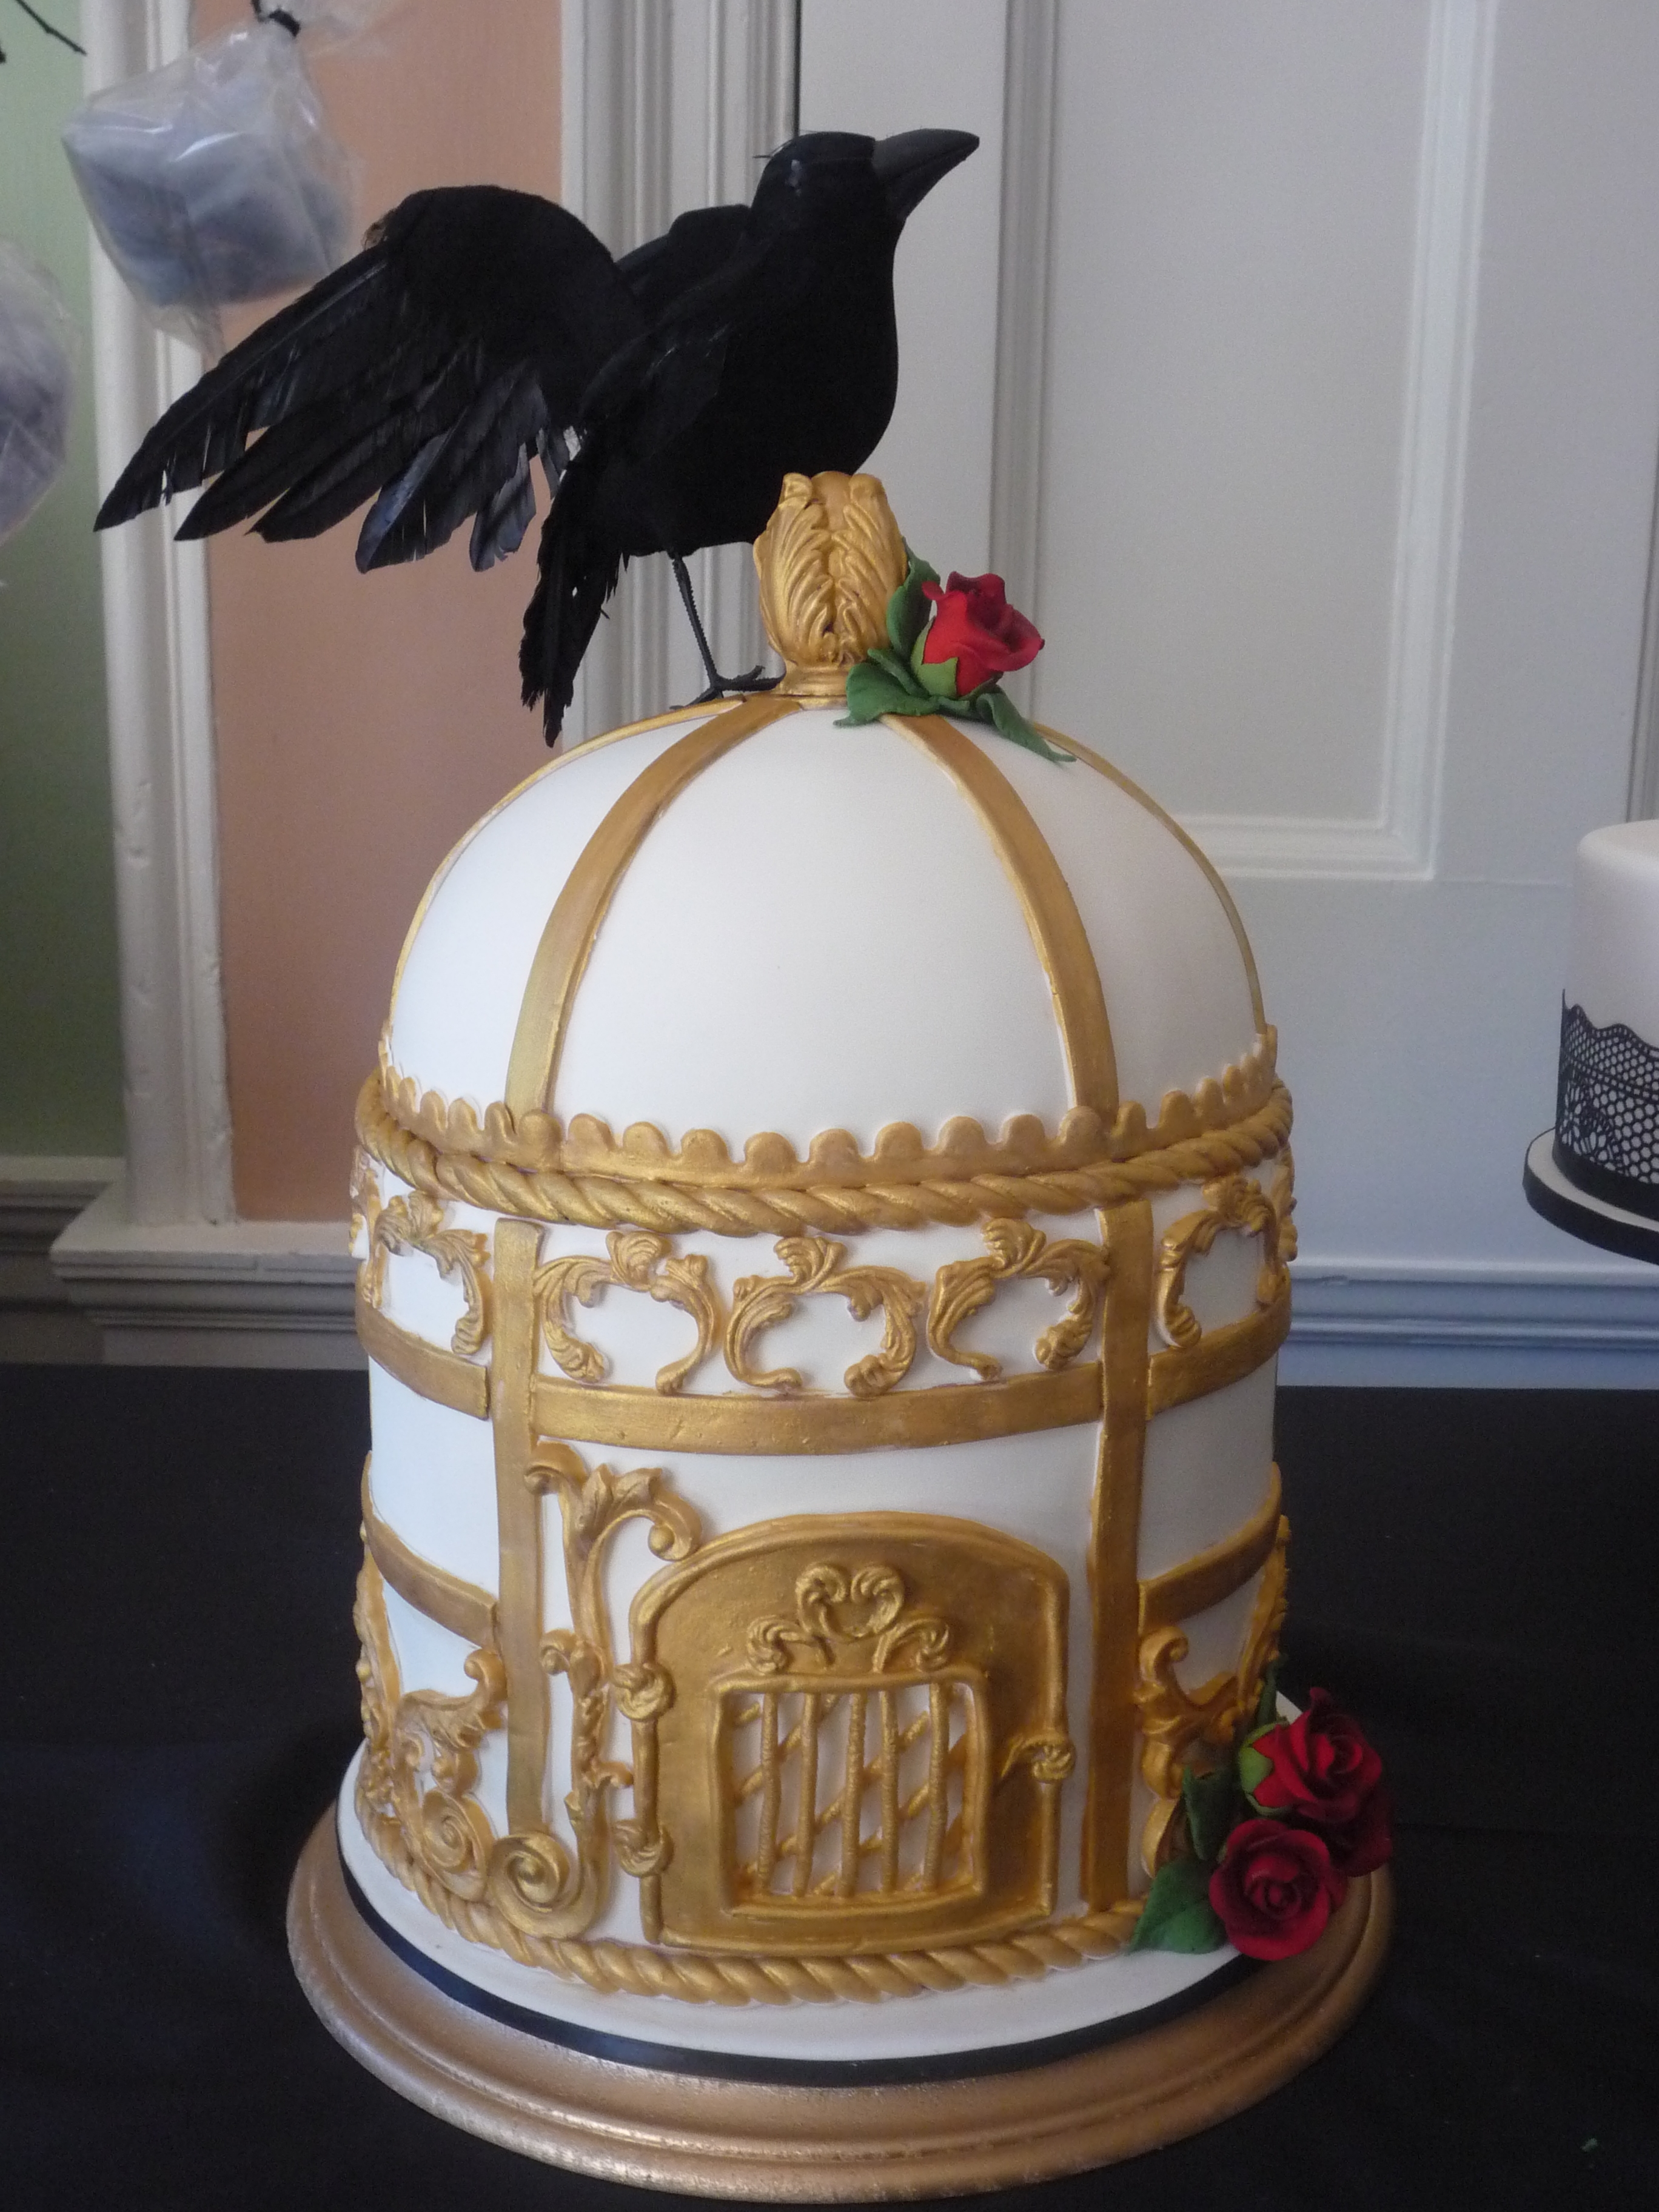 This was a one of the cakes for the Halla Galla Victorian soiree event in St Augustine Florida.